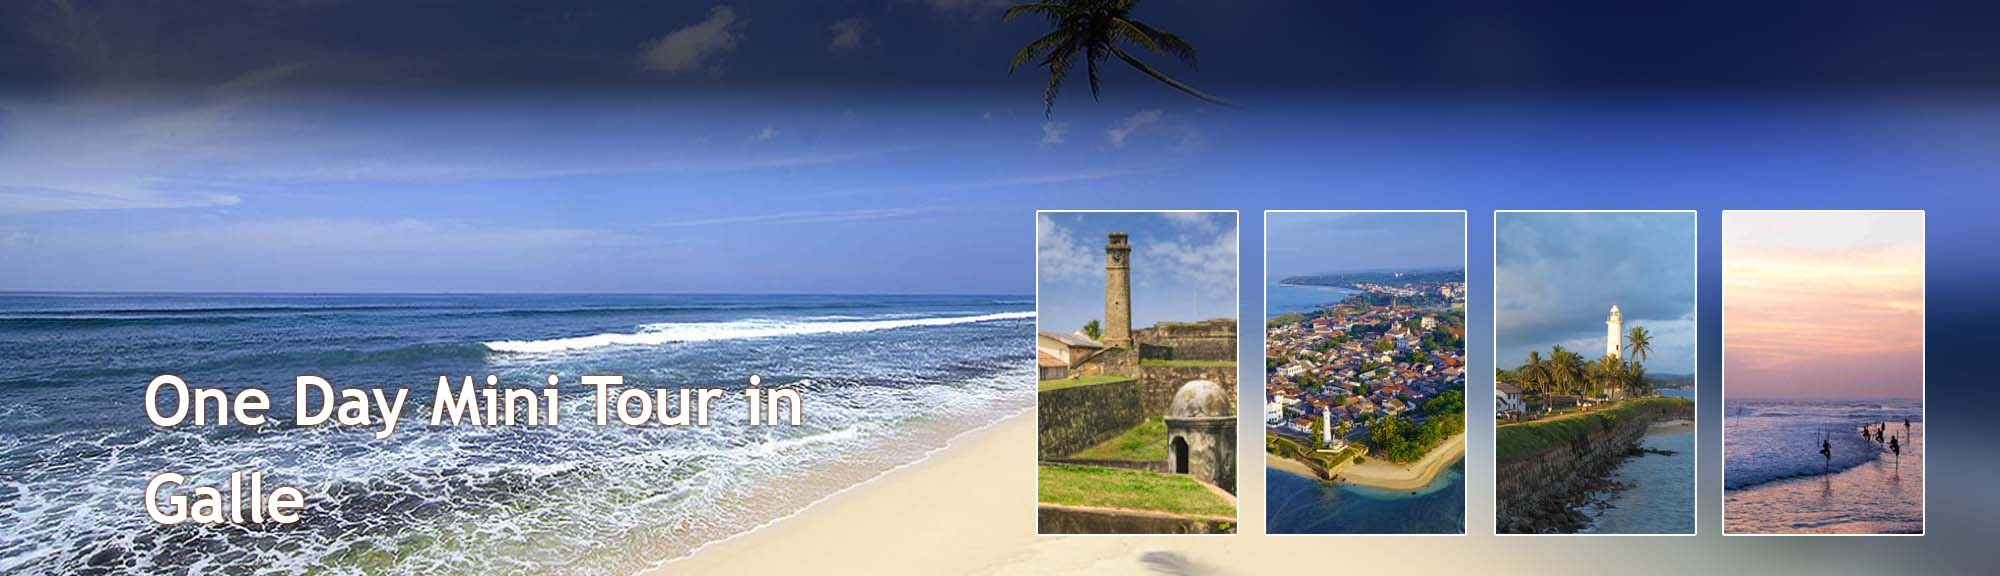 Galle-one day tour